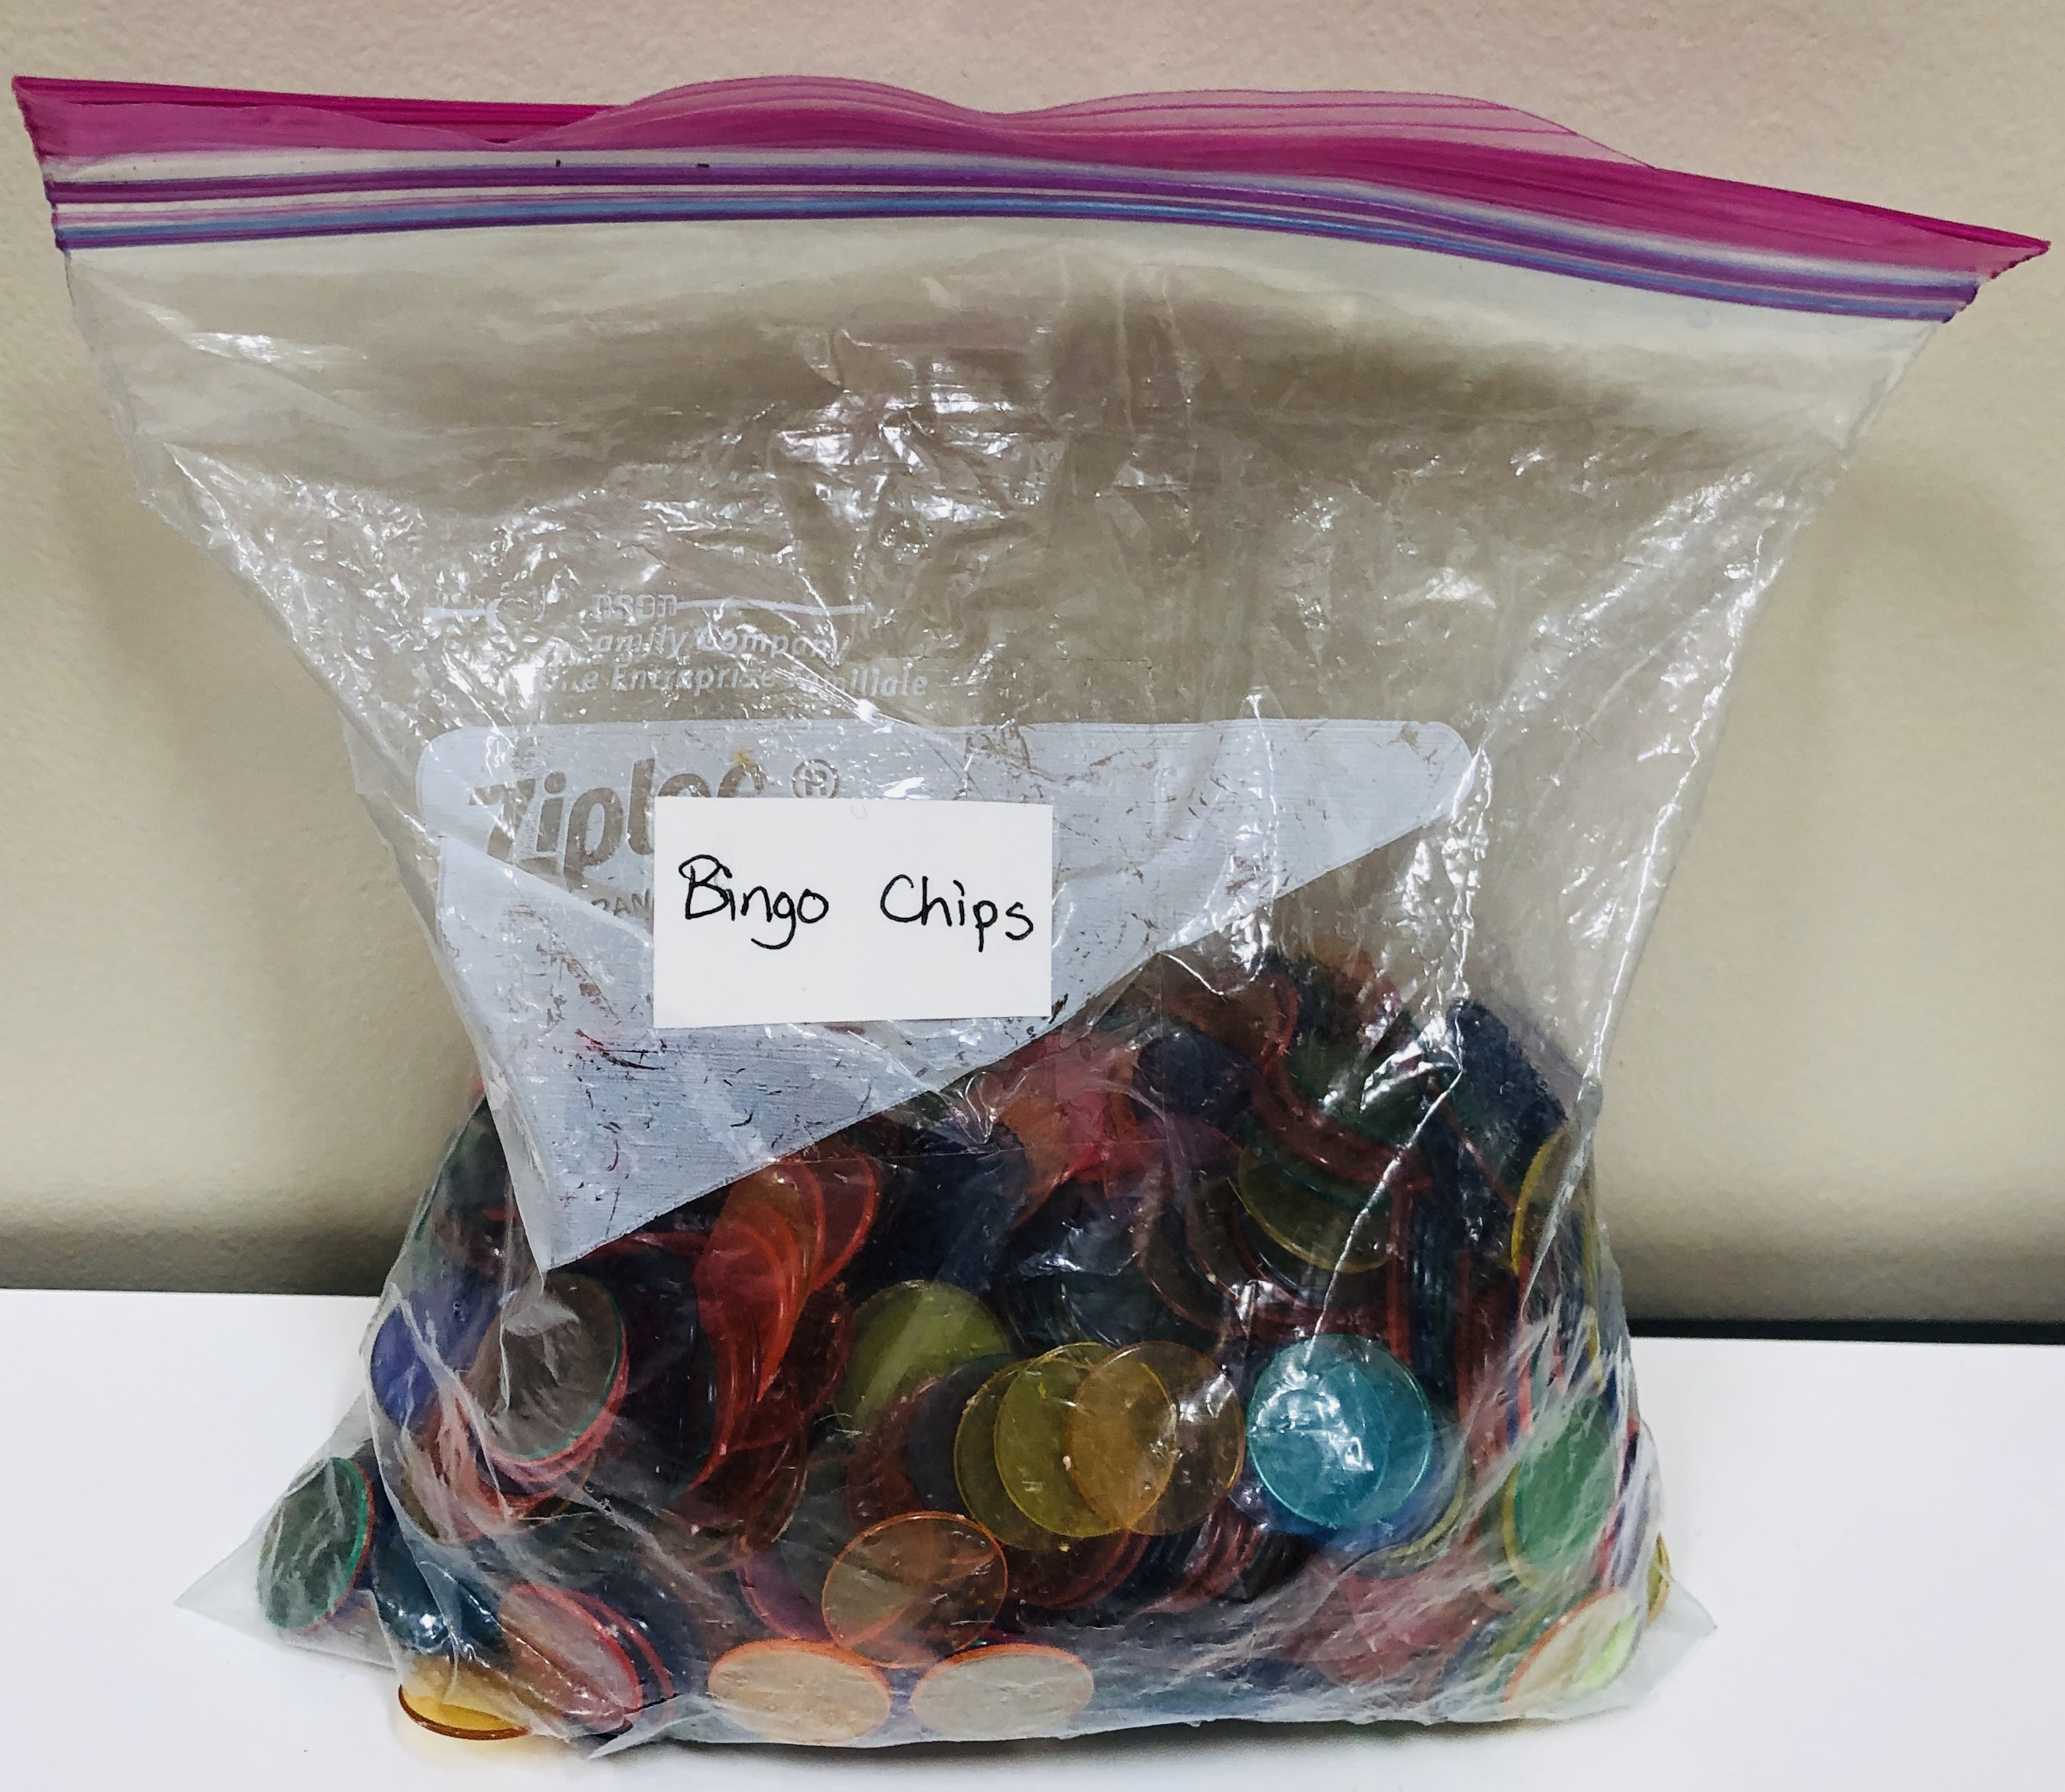 1 bag of bingo chips